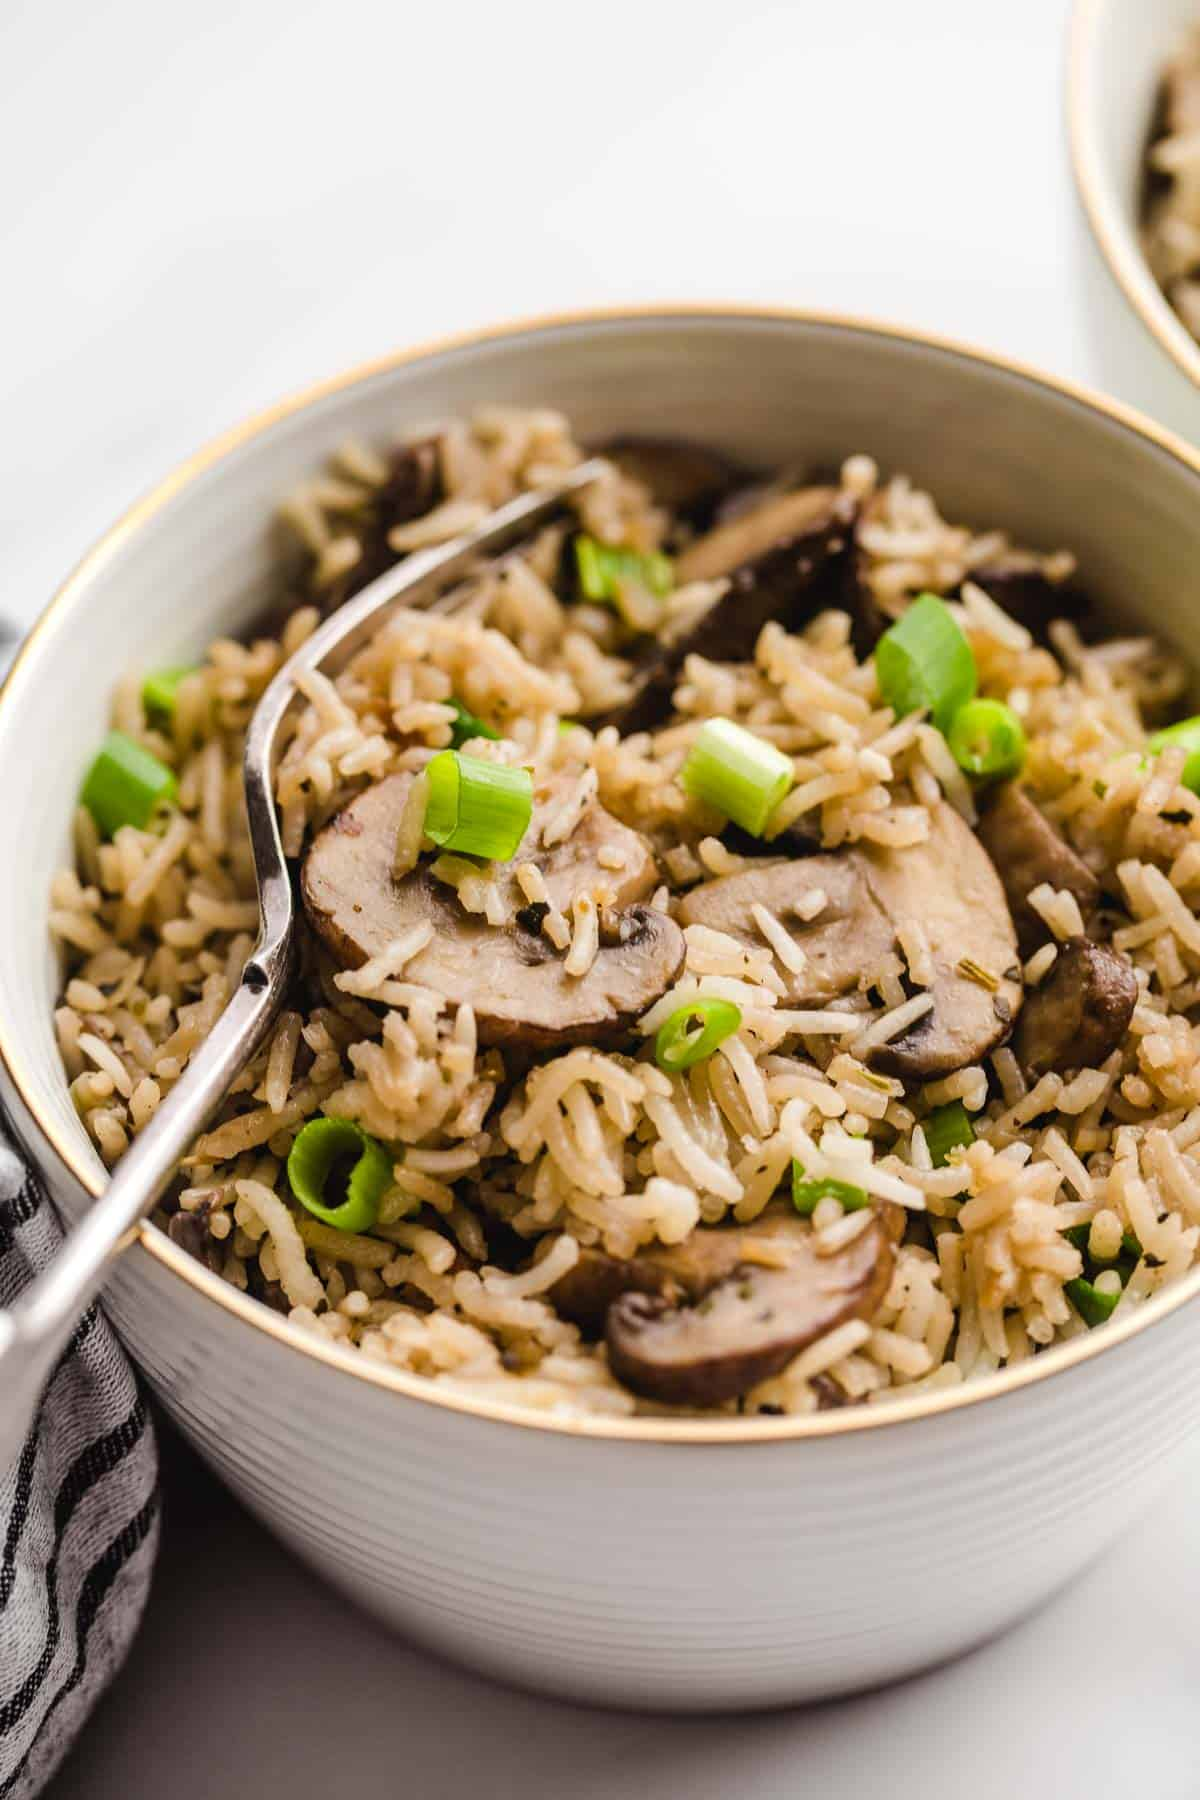 A bowl of mushroom rice garnished with sliced green onions